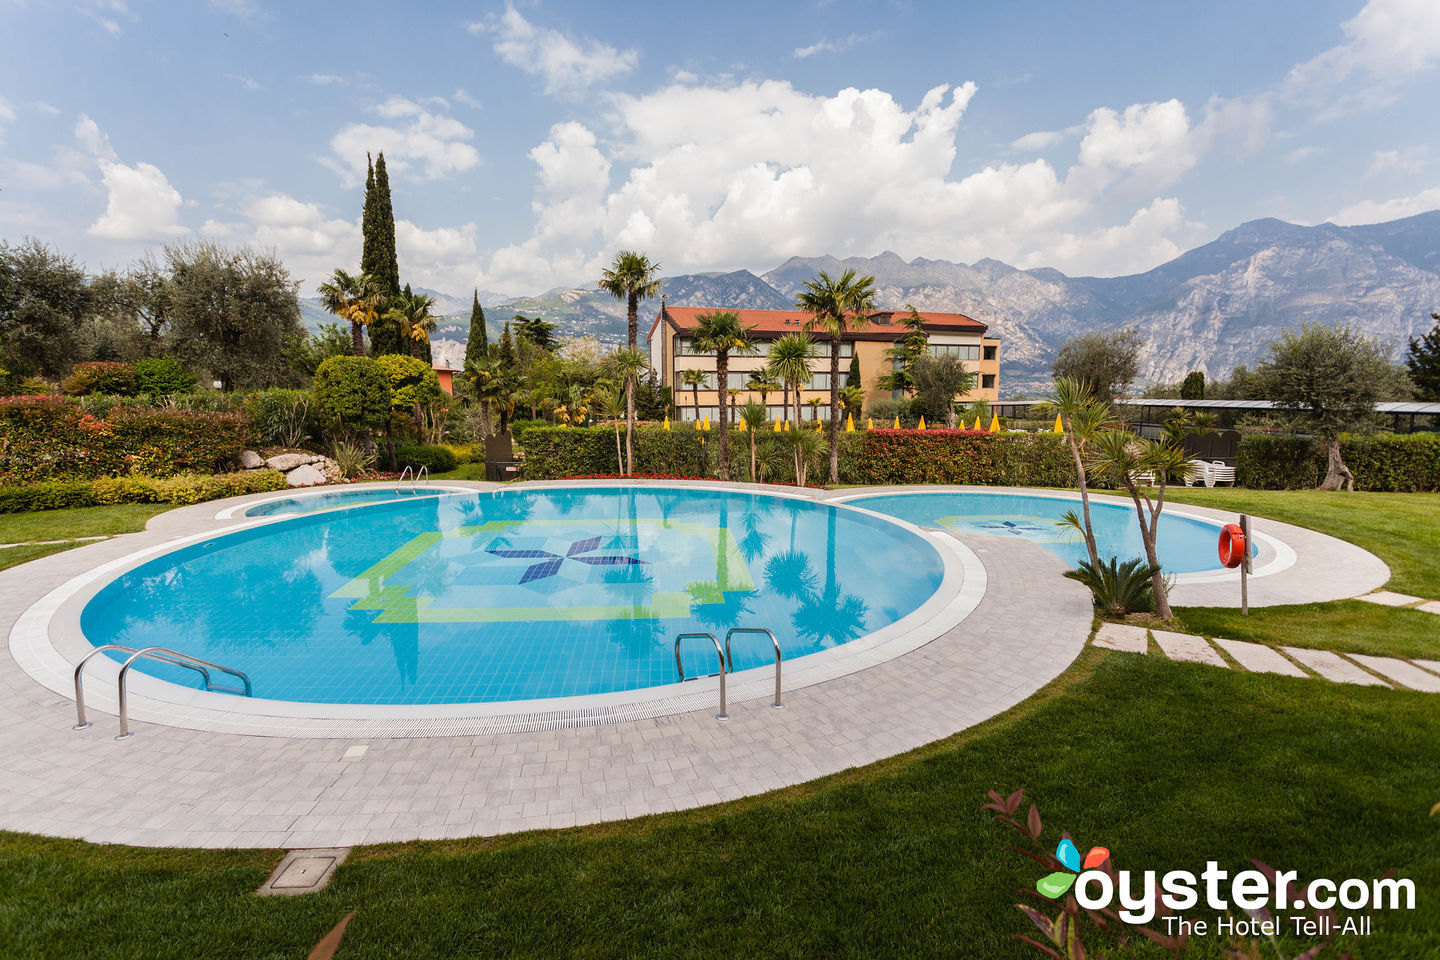 Ferienhaus Mit Pool Gardasee Bardolino The Best Hotels For Families In Lake Garda Updated 2019 Oyster